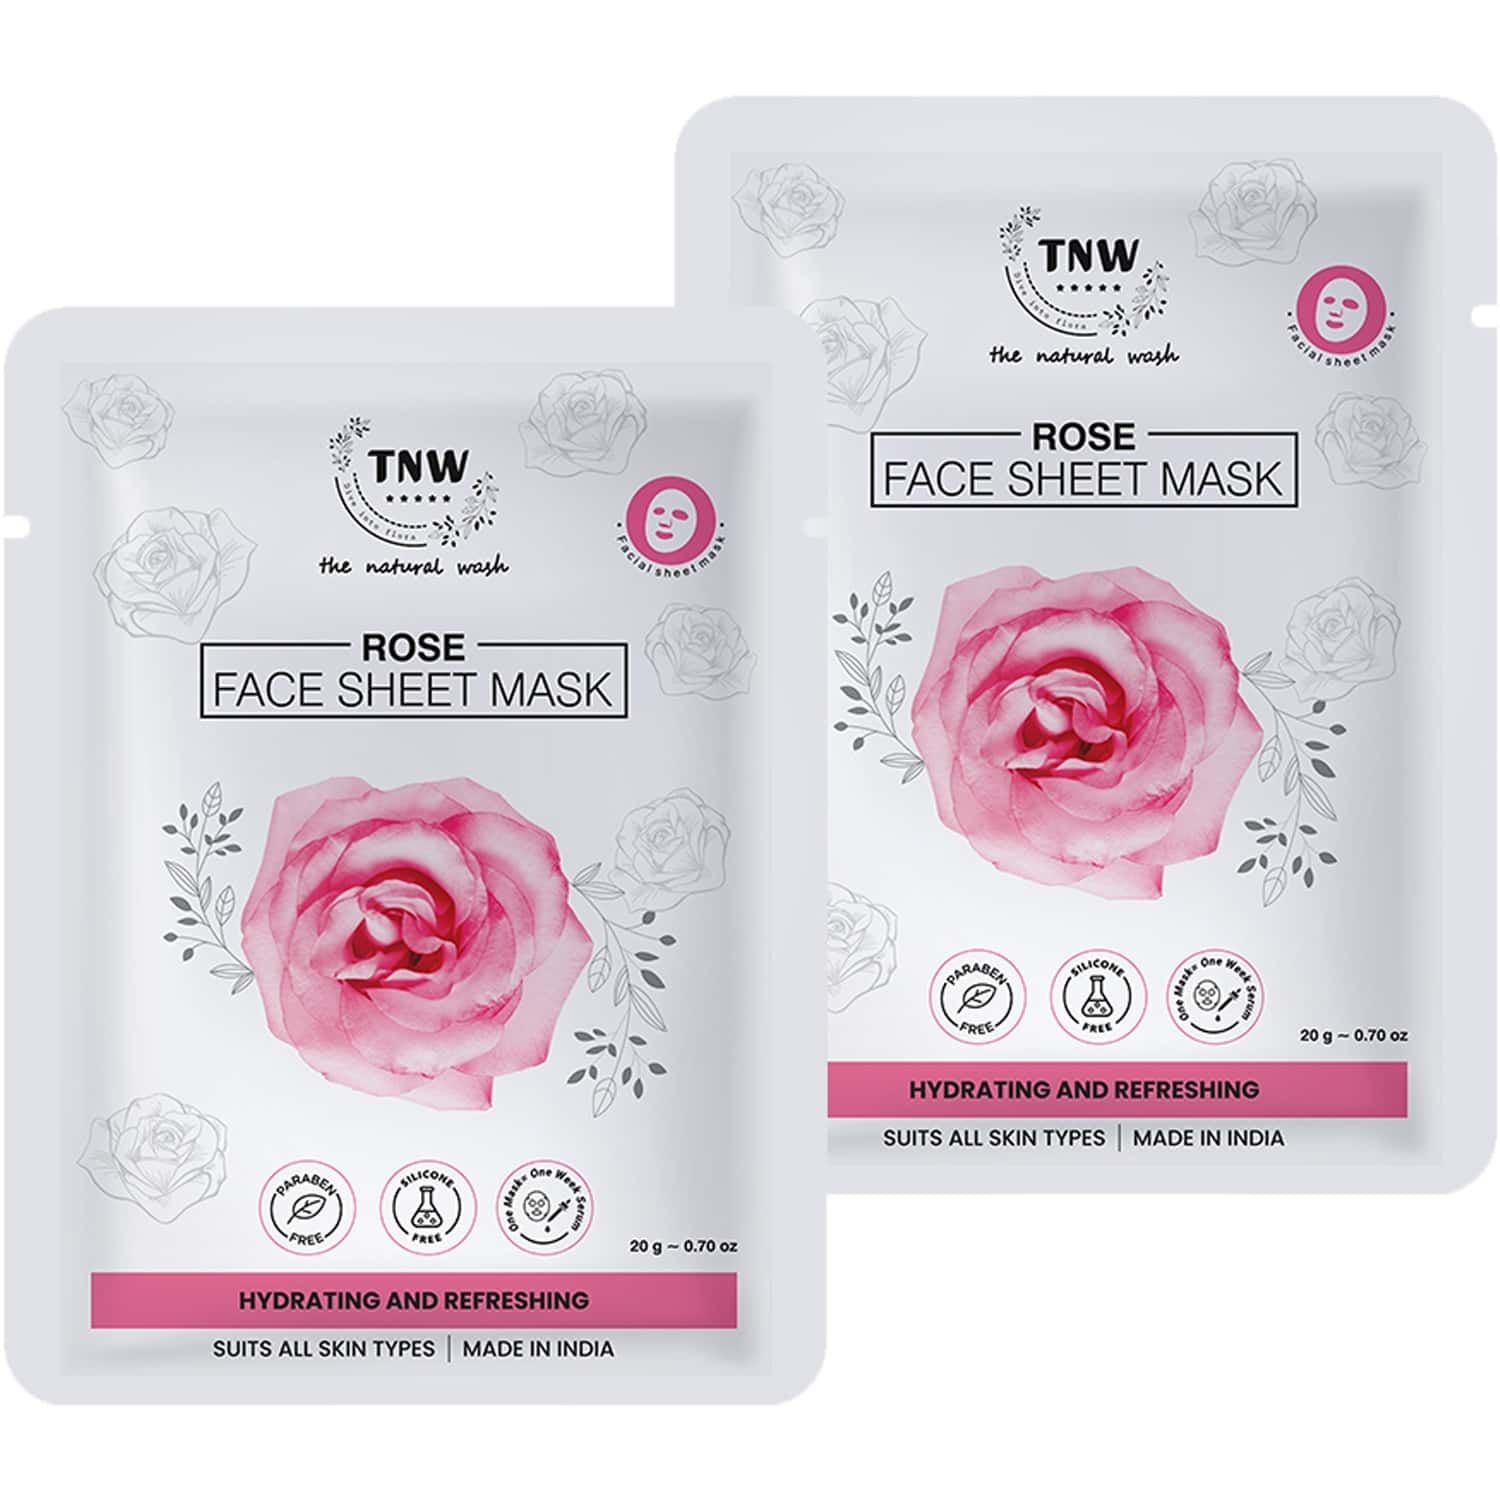 Tnw - The Natural Wash Rose Face Sheet Mask - Pack Of 2